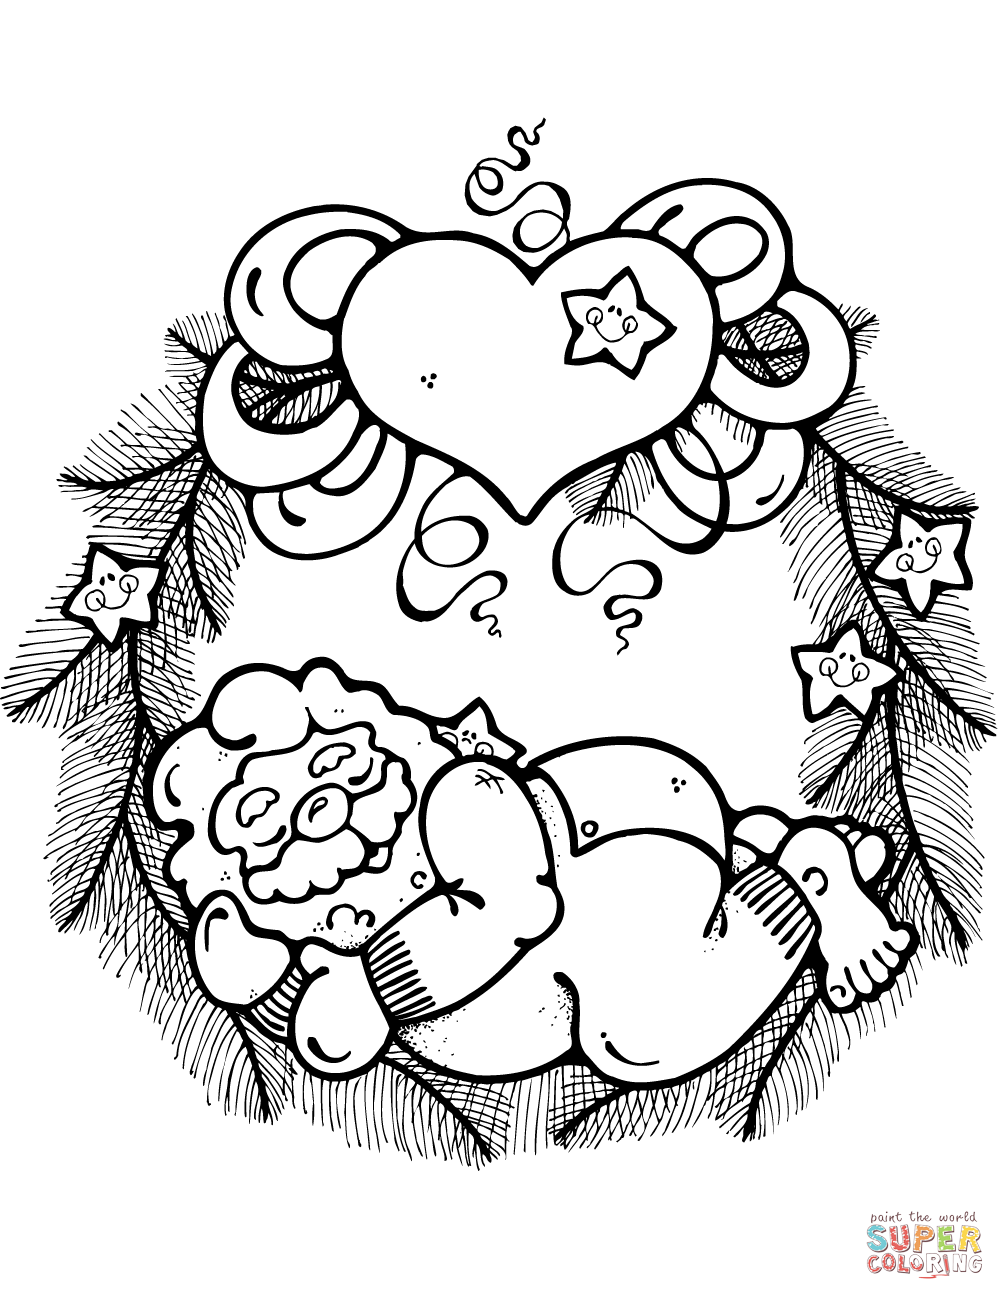 Wreath With Sleeping Santa Claus Decorated With Hearts And Stars